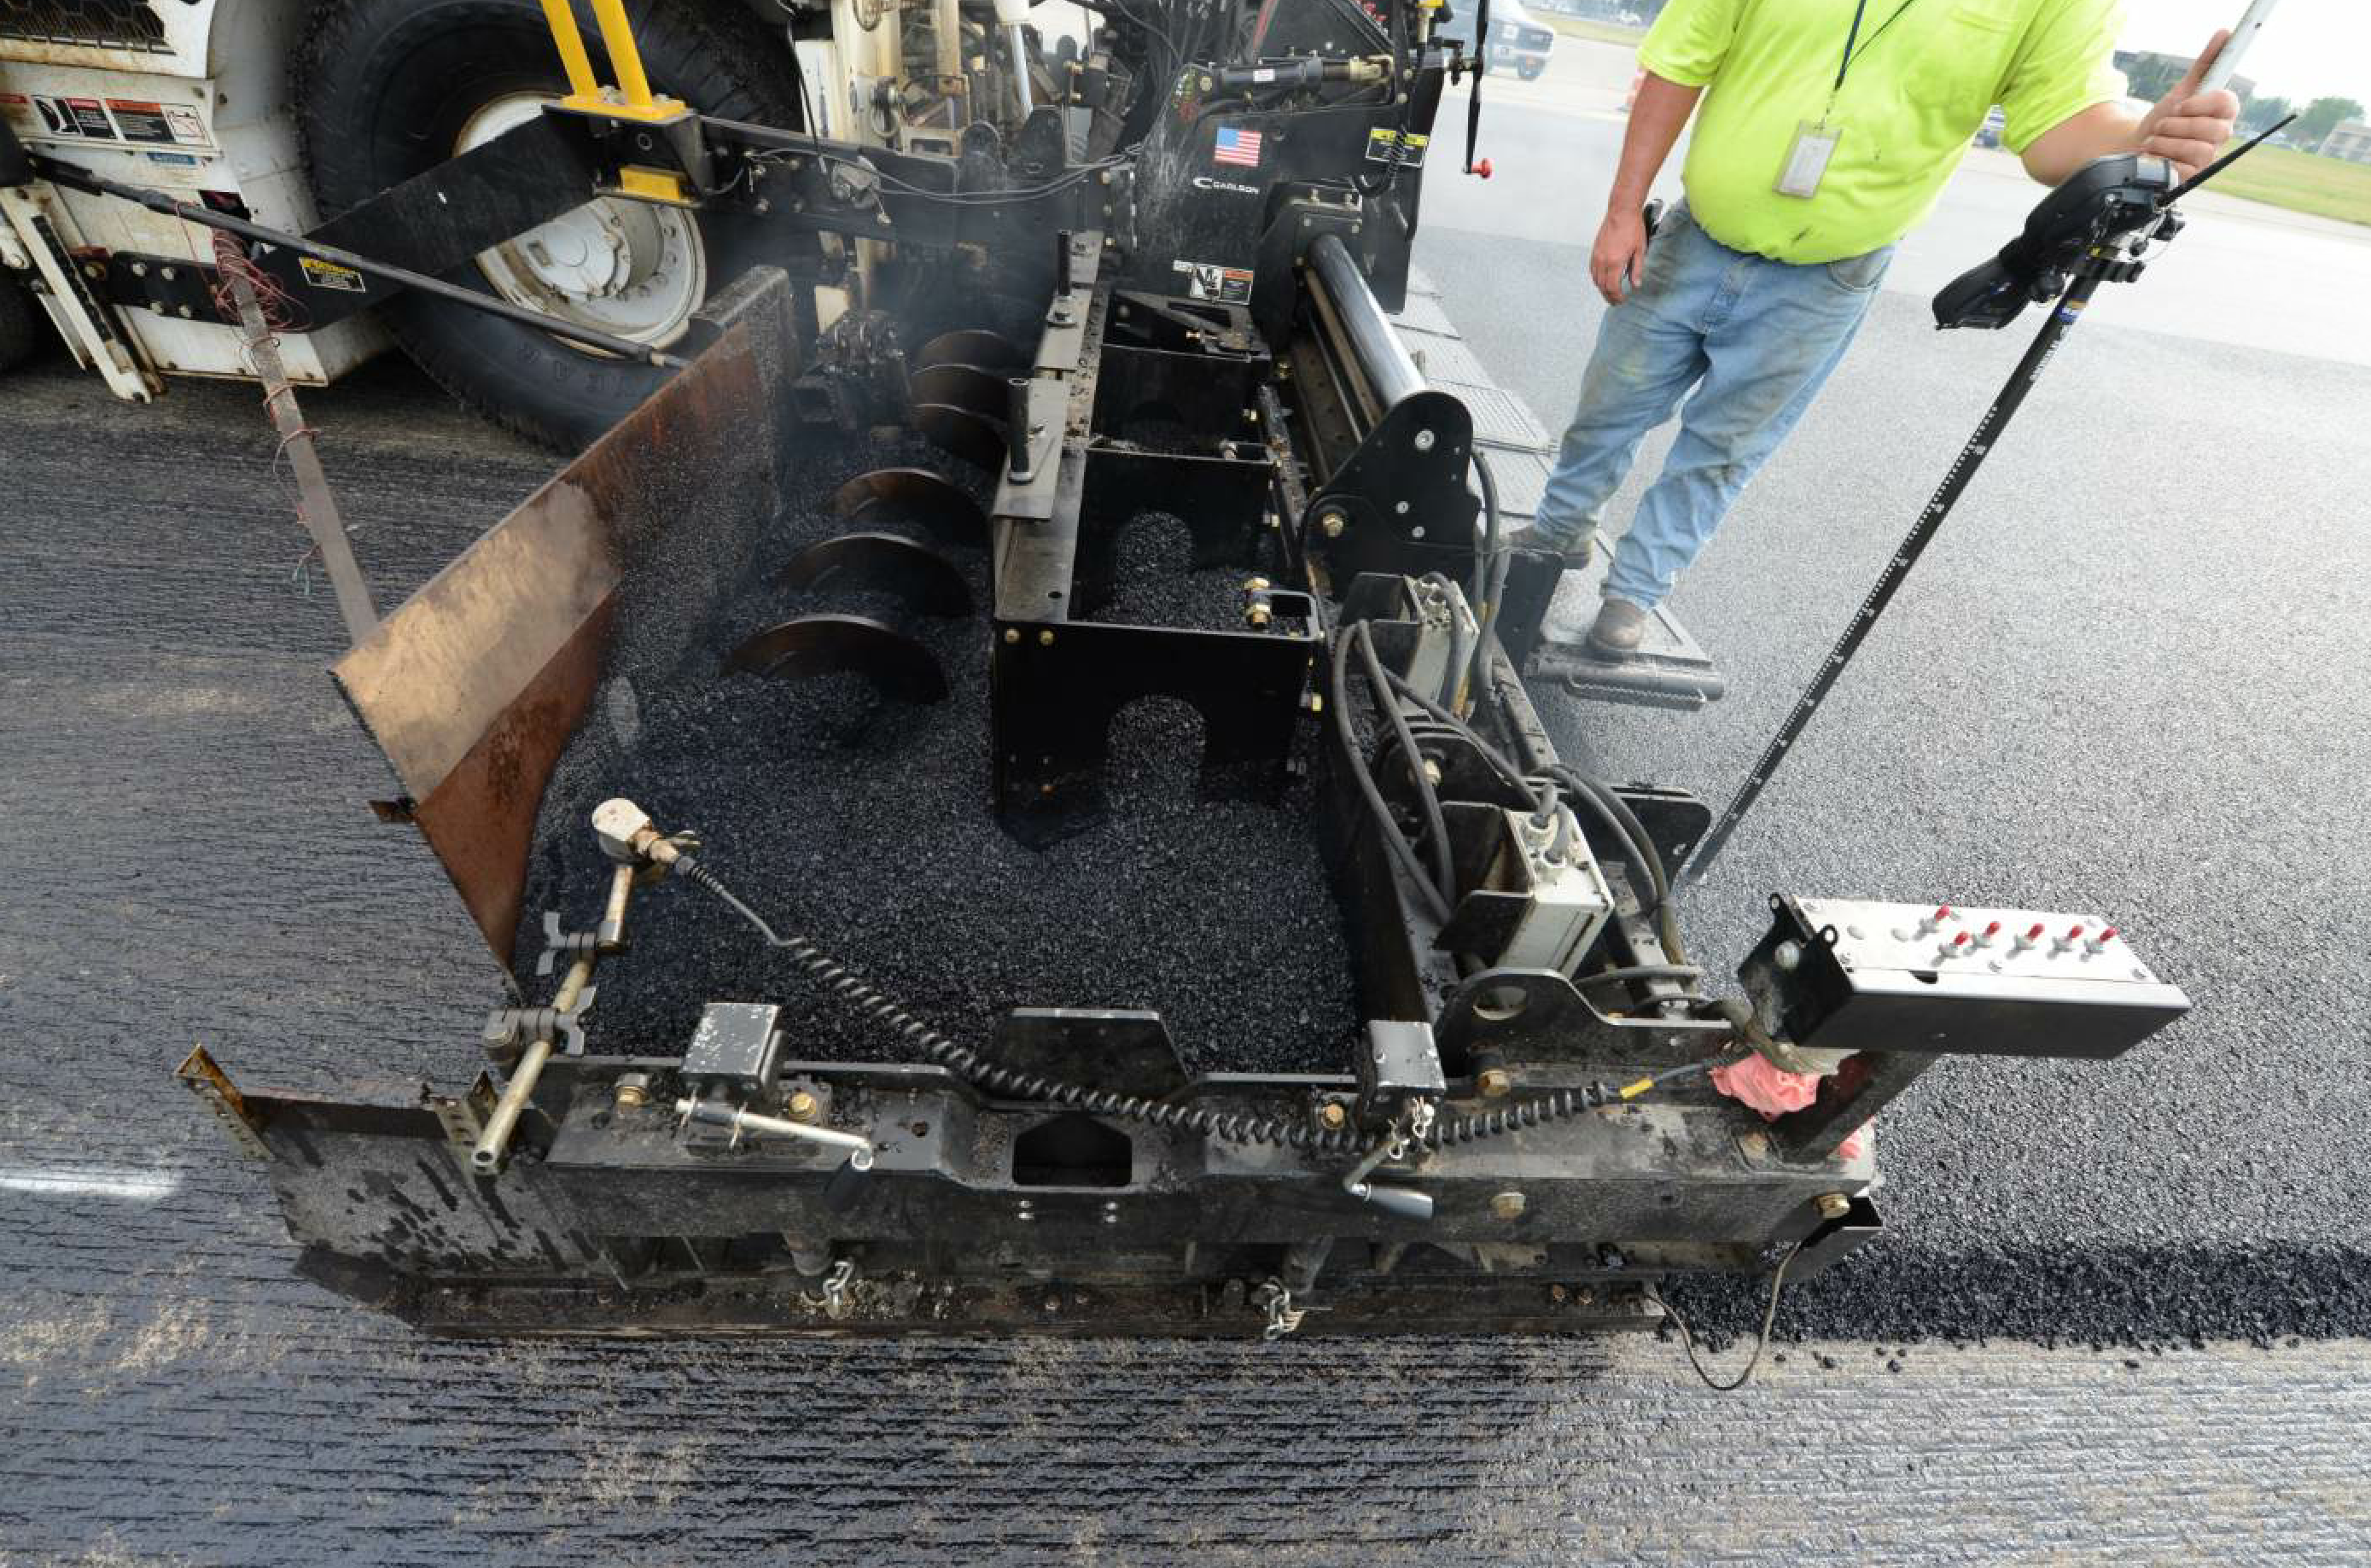 The Carlson EZR2 rear mount screed was used for its weight and 4-inch chrome rods tightly fixed to a heavy-duty tubular frame, providing the extensions optimal rigidity.